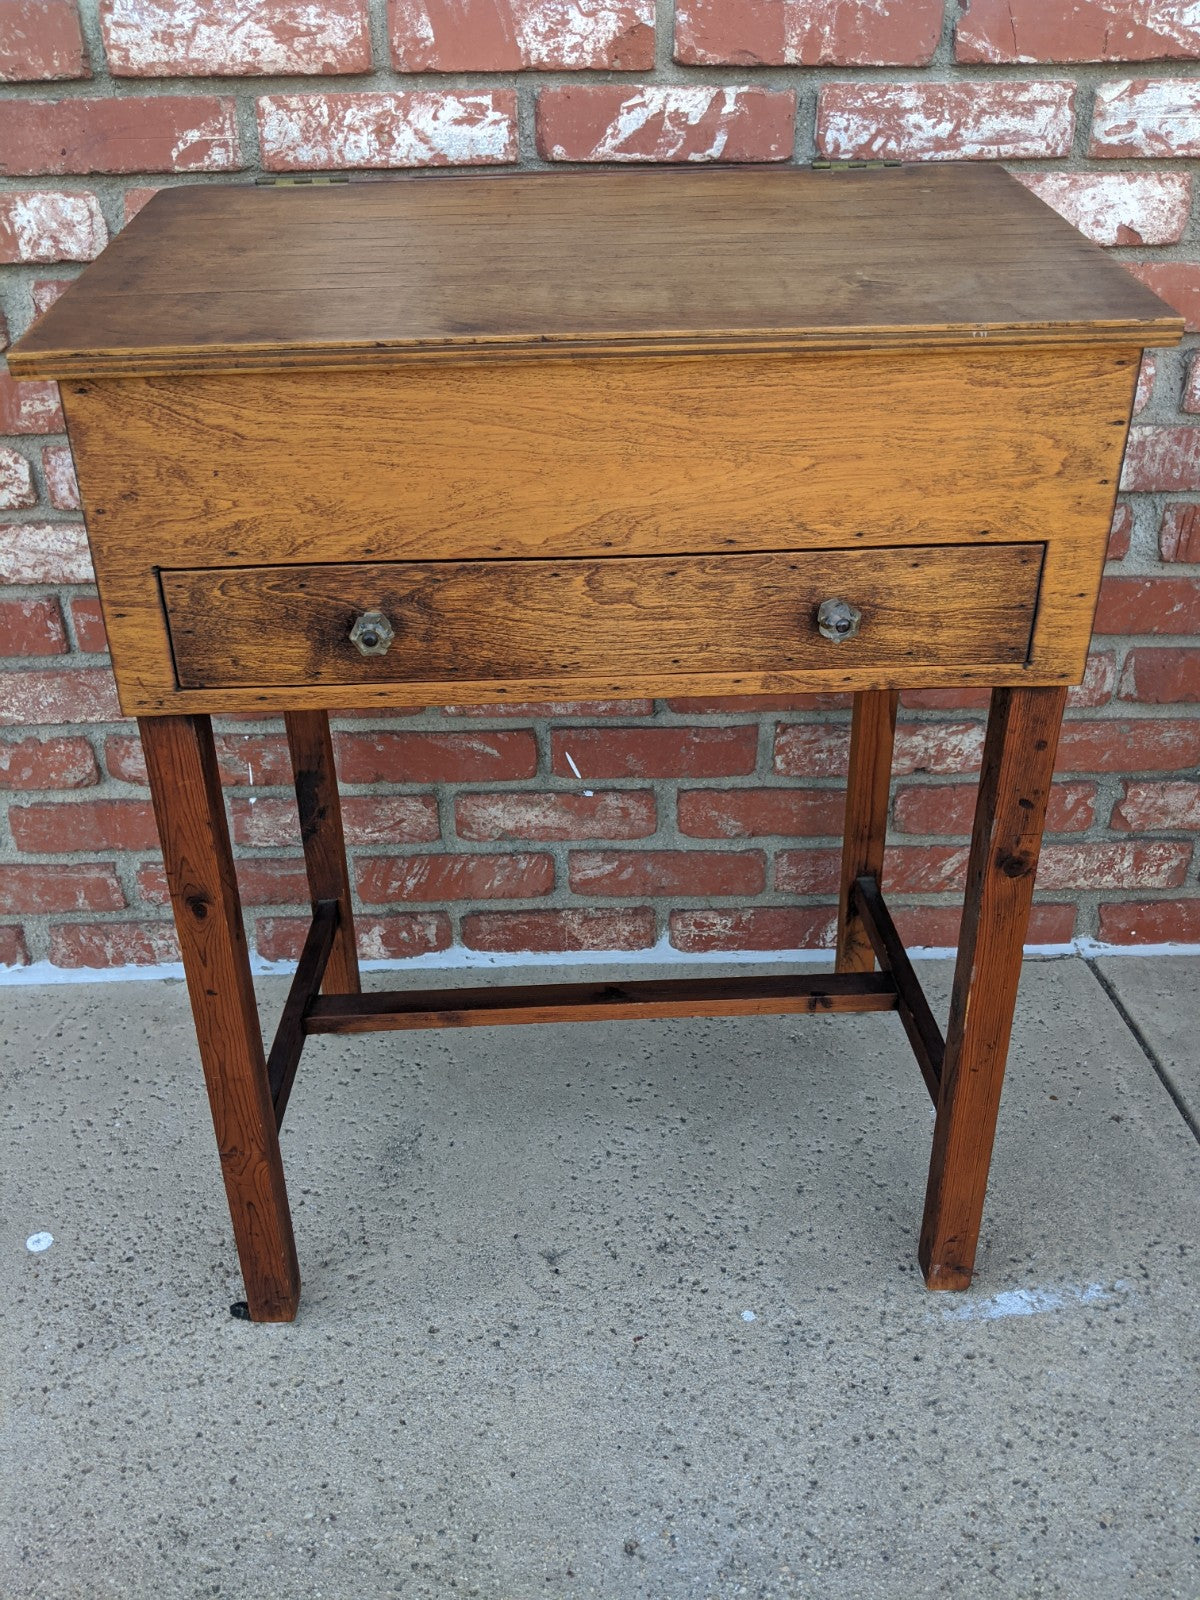 Antique wooden writer's desk